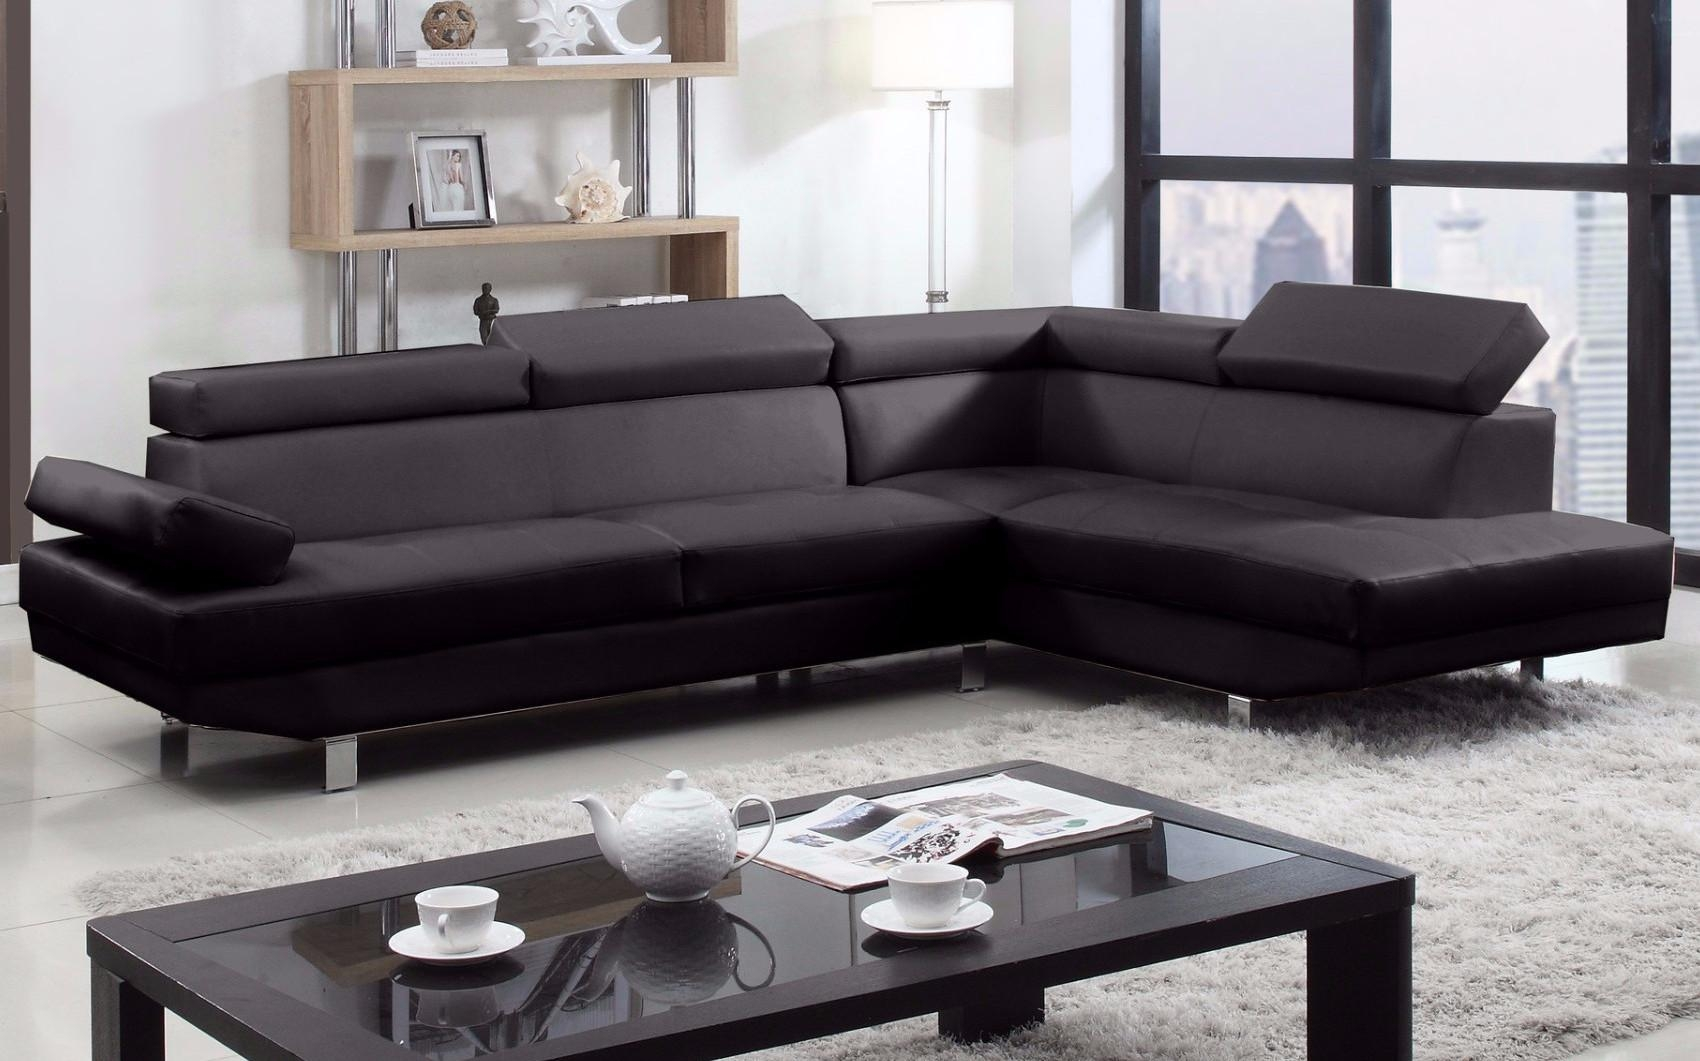 2 Piece Modern Bonded Leather Right Facing Chaise Sectional Sofa Within 2 Piece Sofas (View 14 of 20)